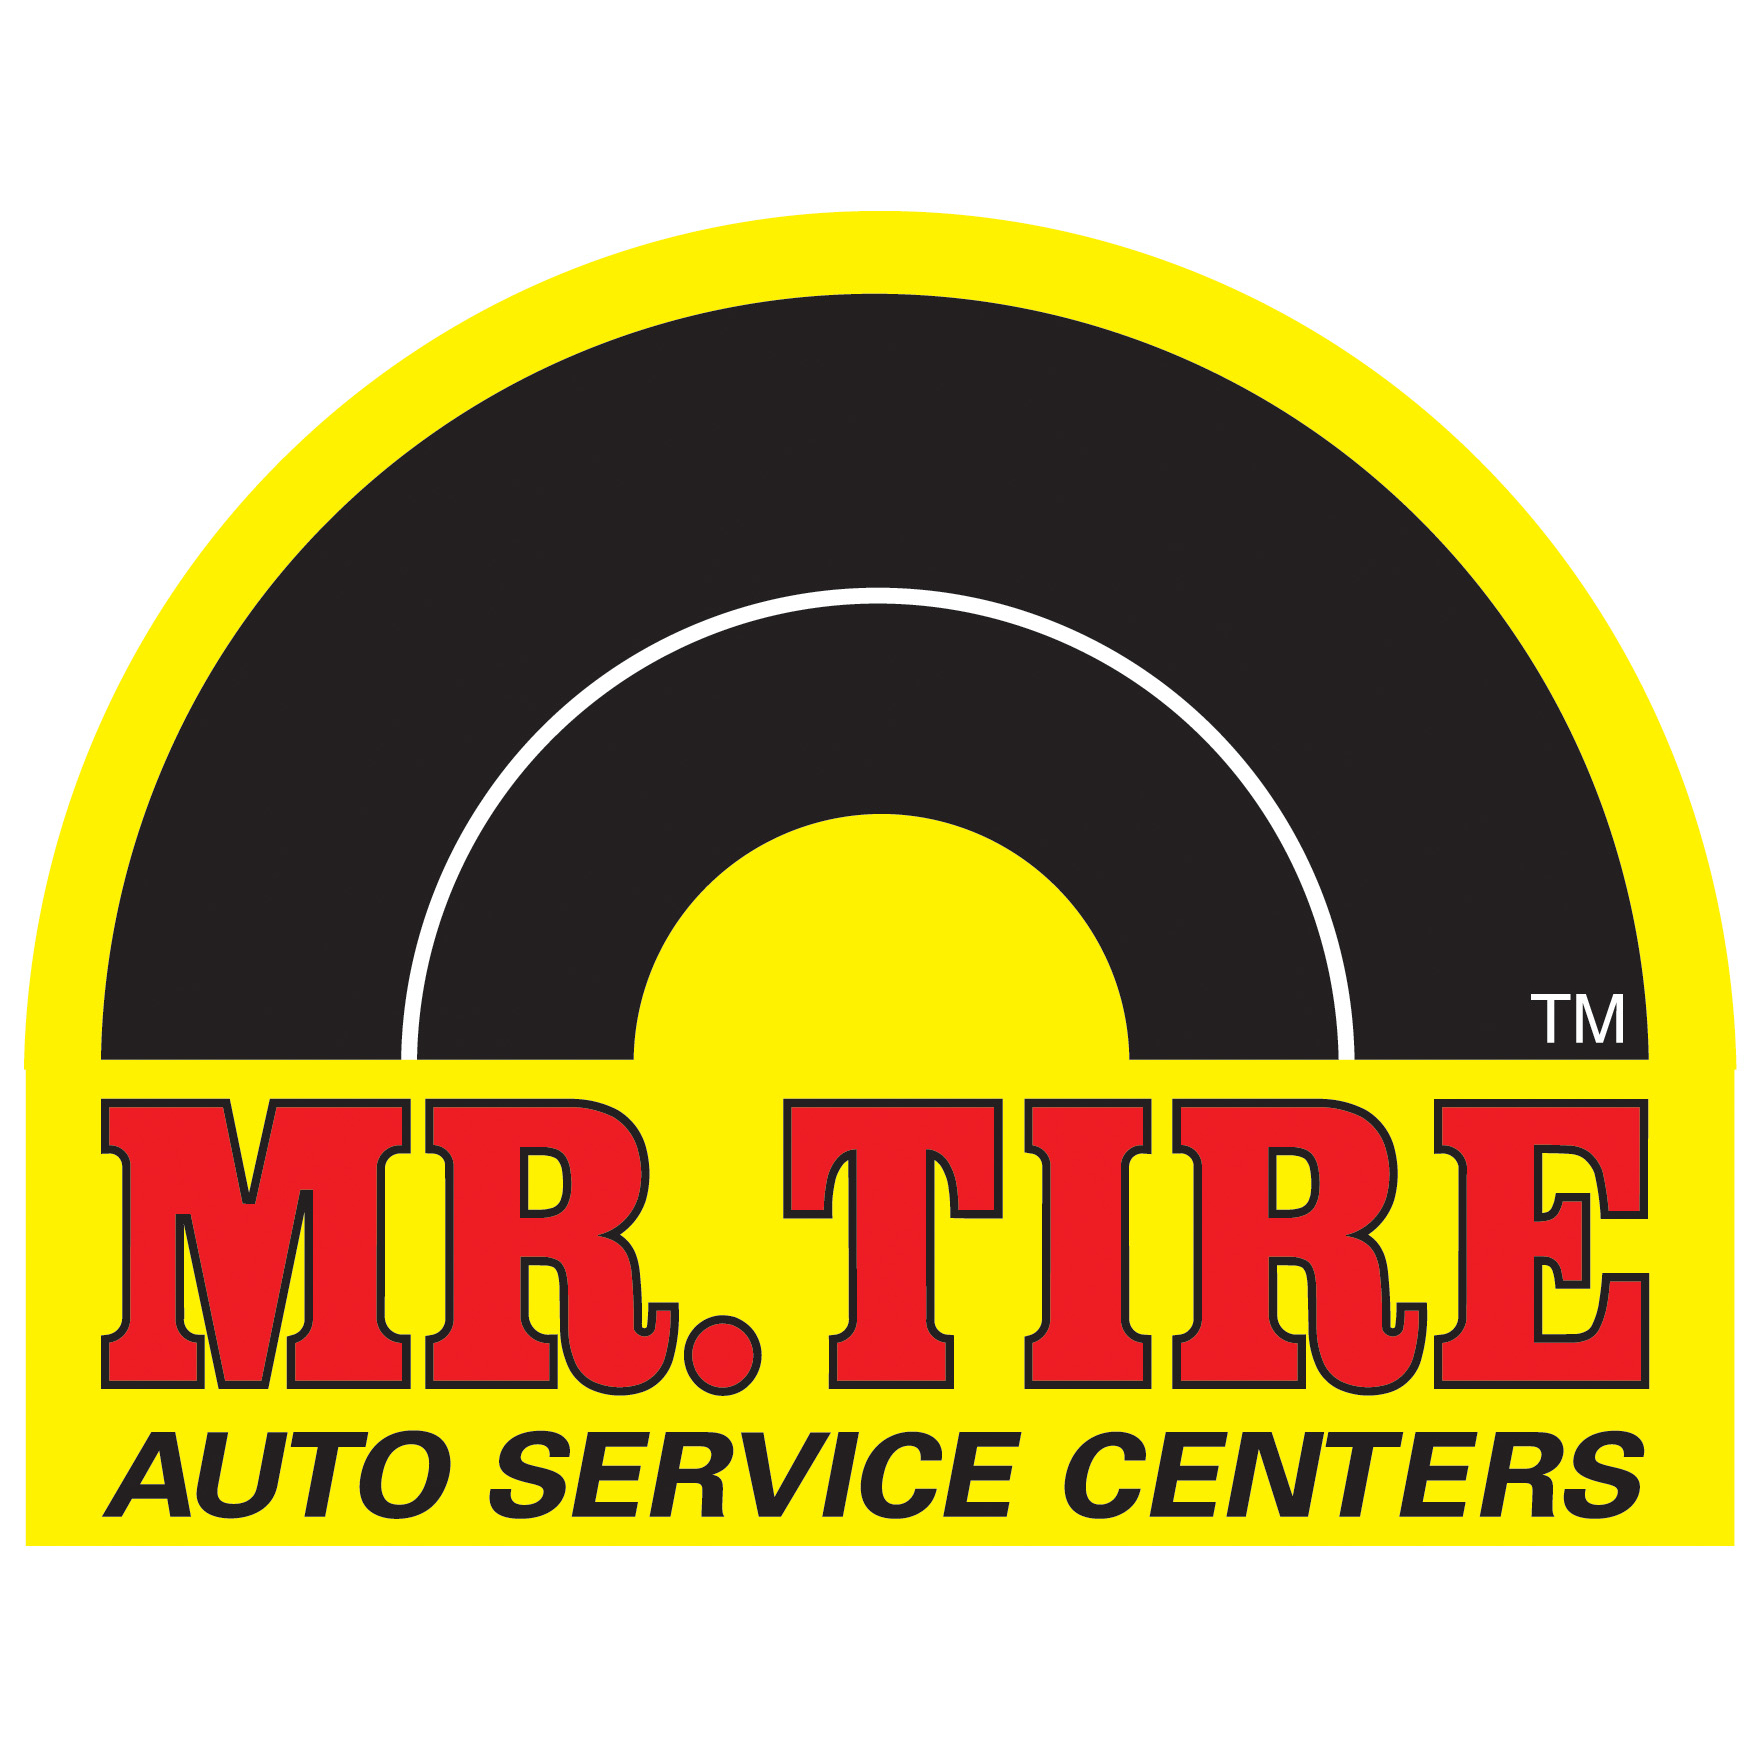 Mr Tire Auto Service Centers - Irwin, PA - General Auto Repair & Service